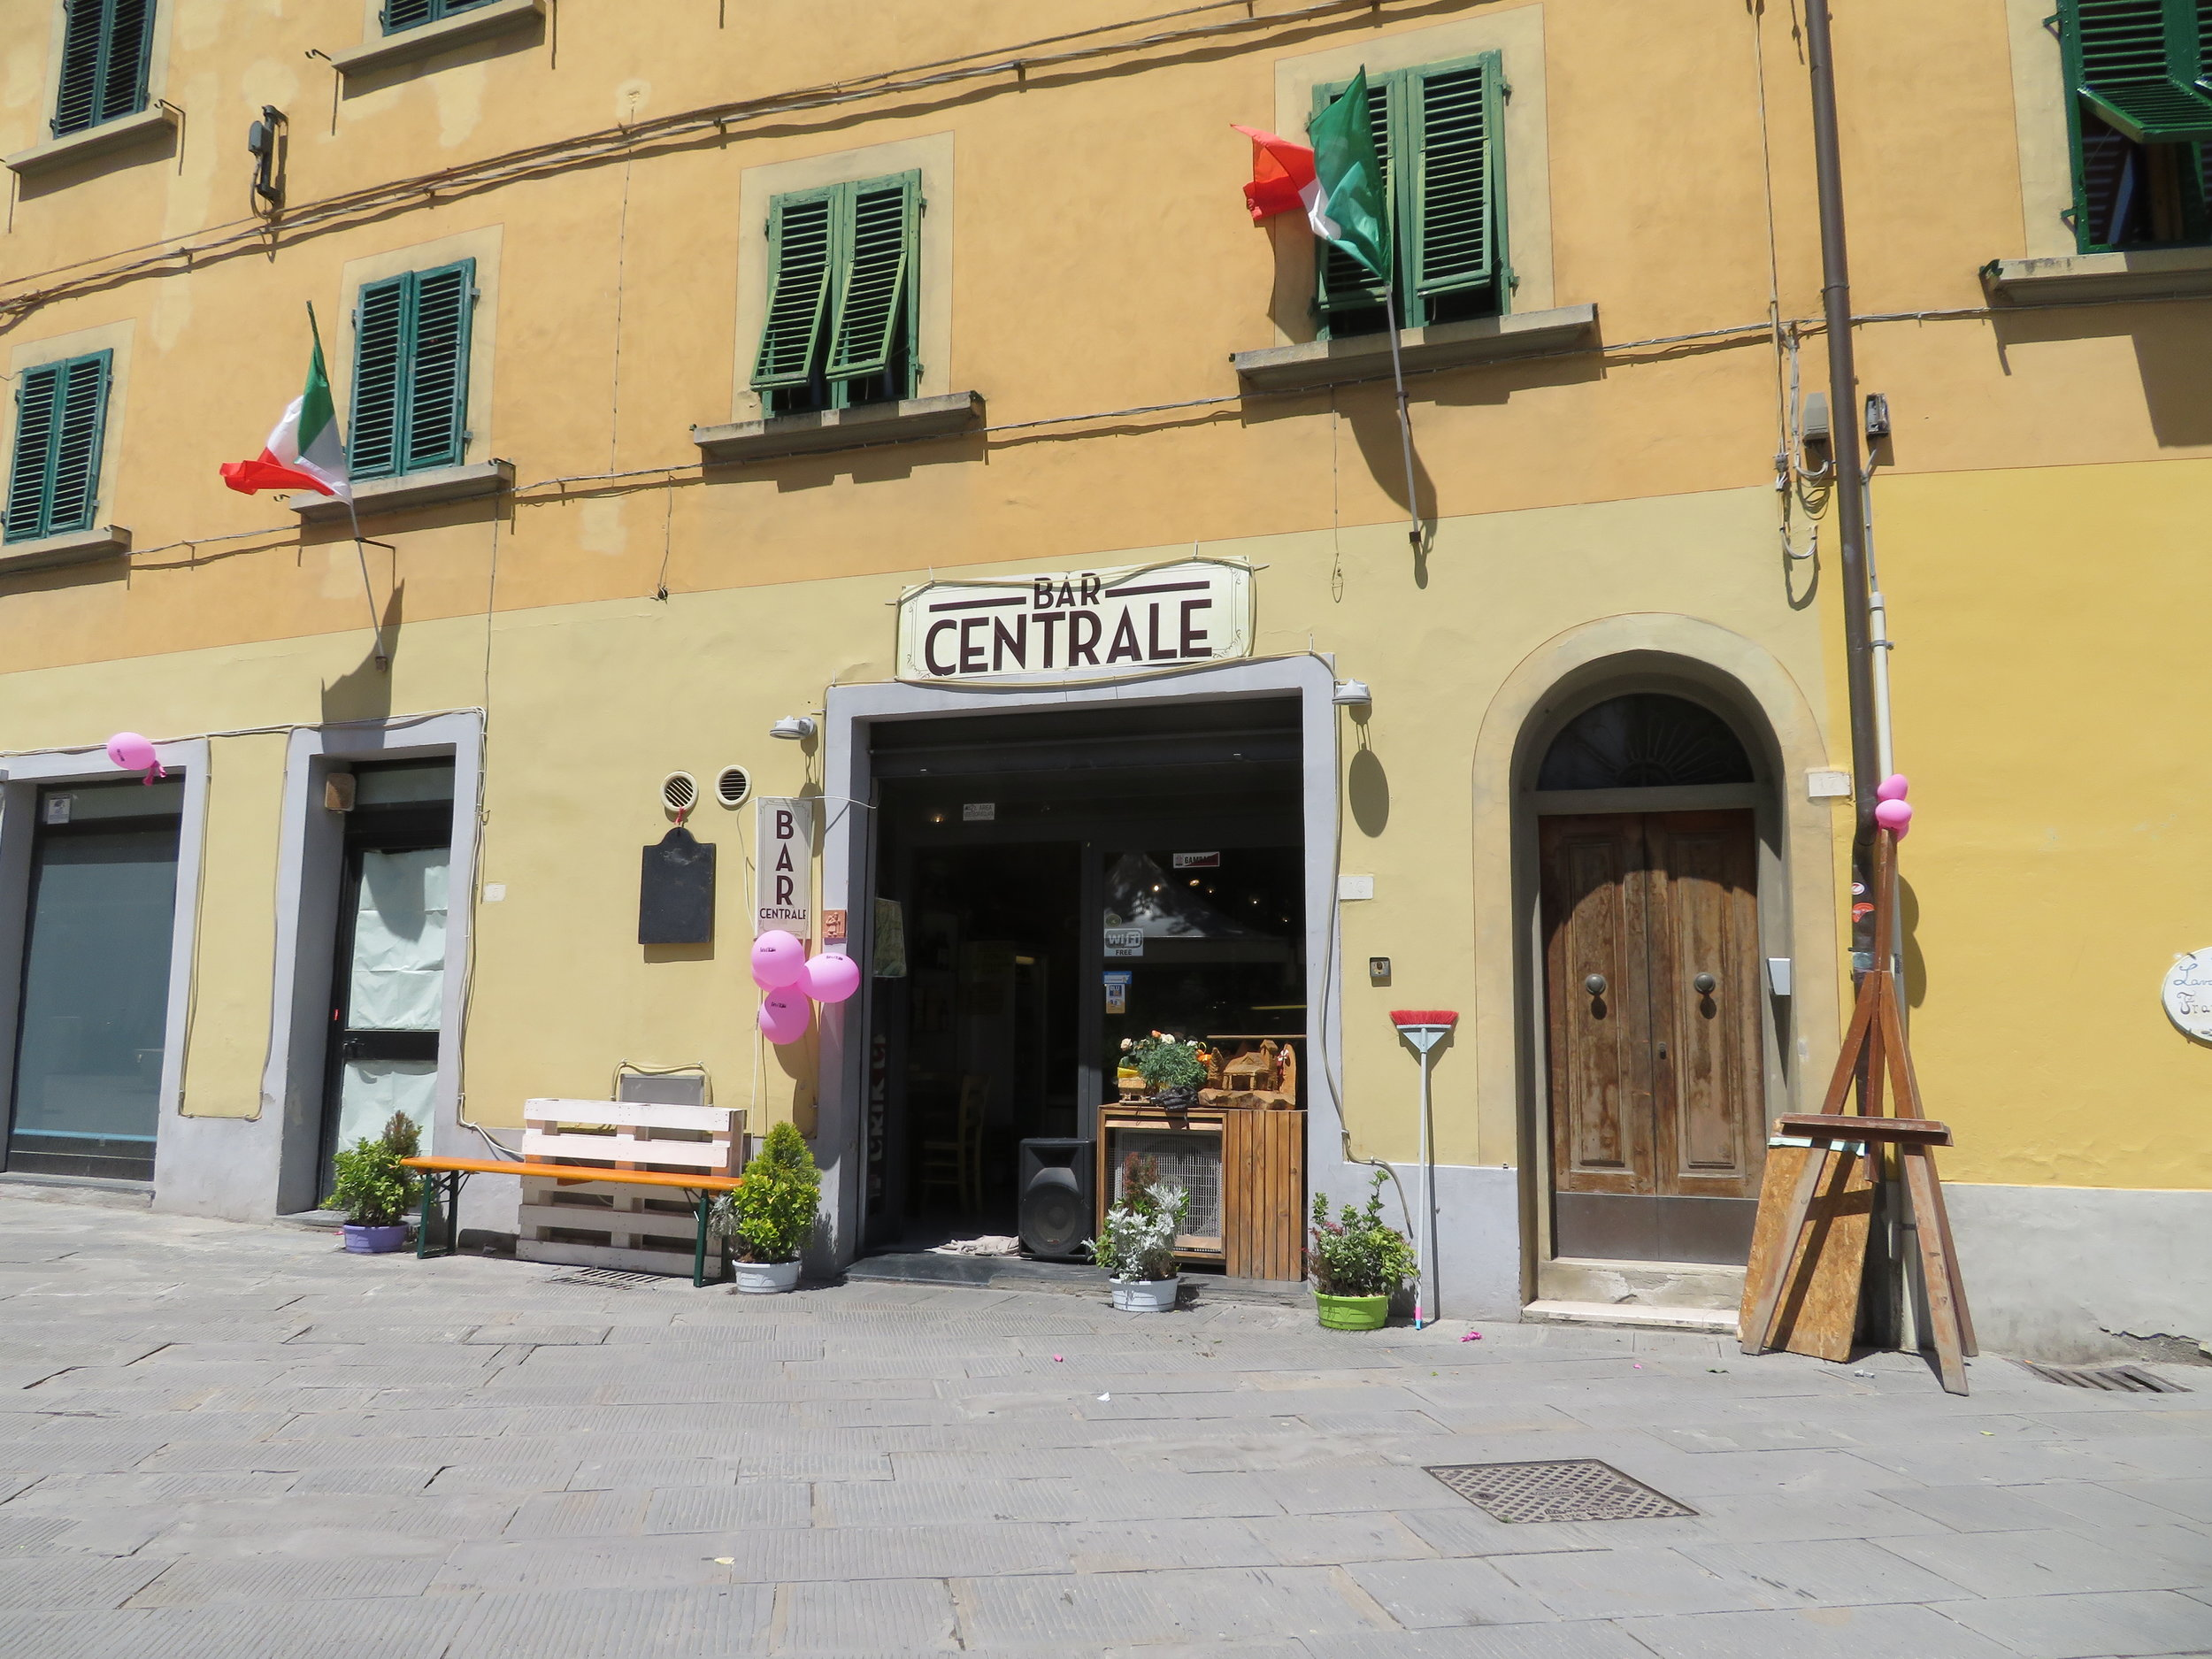 Welcome to Bar Centrale in Gambassi Terme which did provide a 'timbro' for our pilgrim passports.